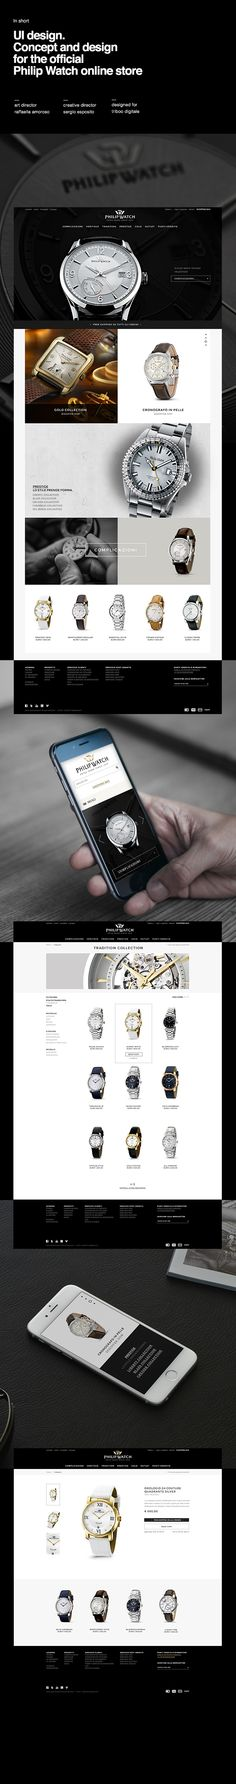 Philip Watch official online store on Behance